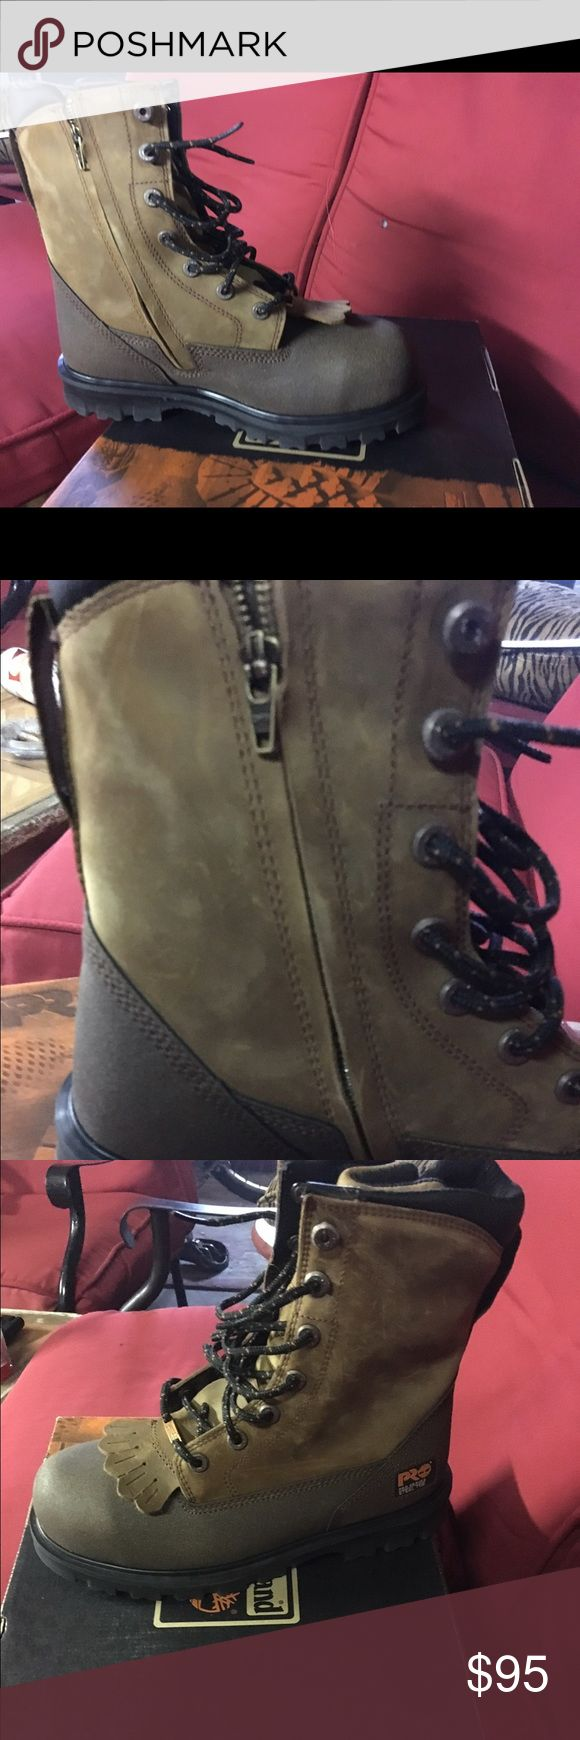 Timberland Lace Rigger Work Boots Brand new in box! Steel toe, water proof, oil and slip resistant. Timberland Shoes Boots